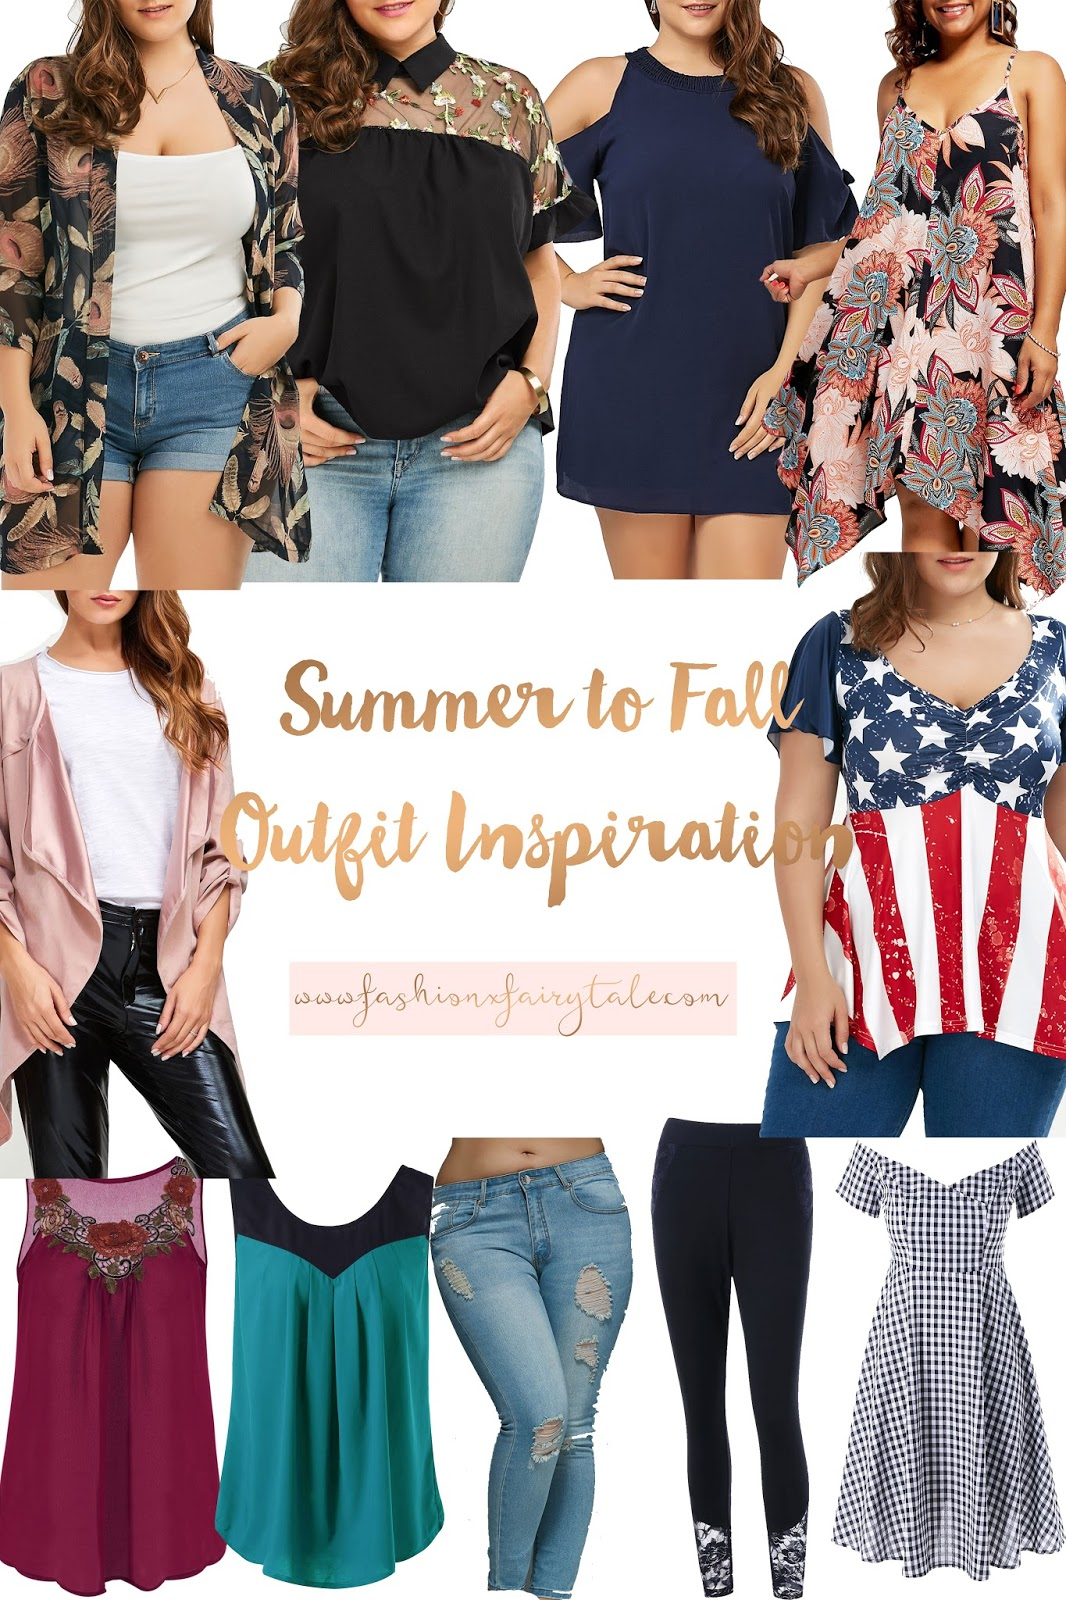 Summer to Fall Transition Outfit Inspiration